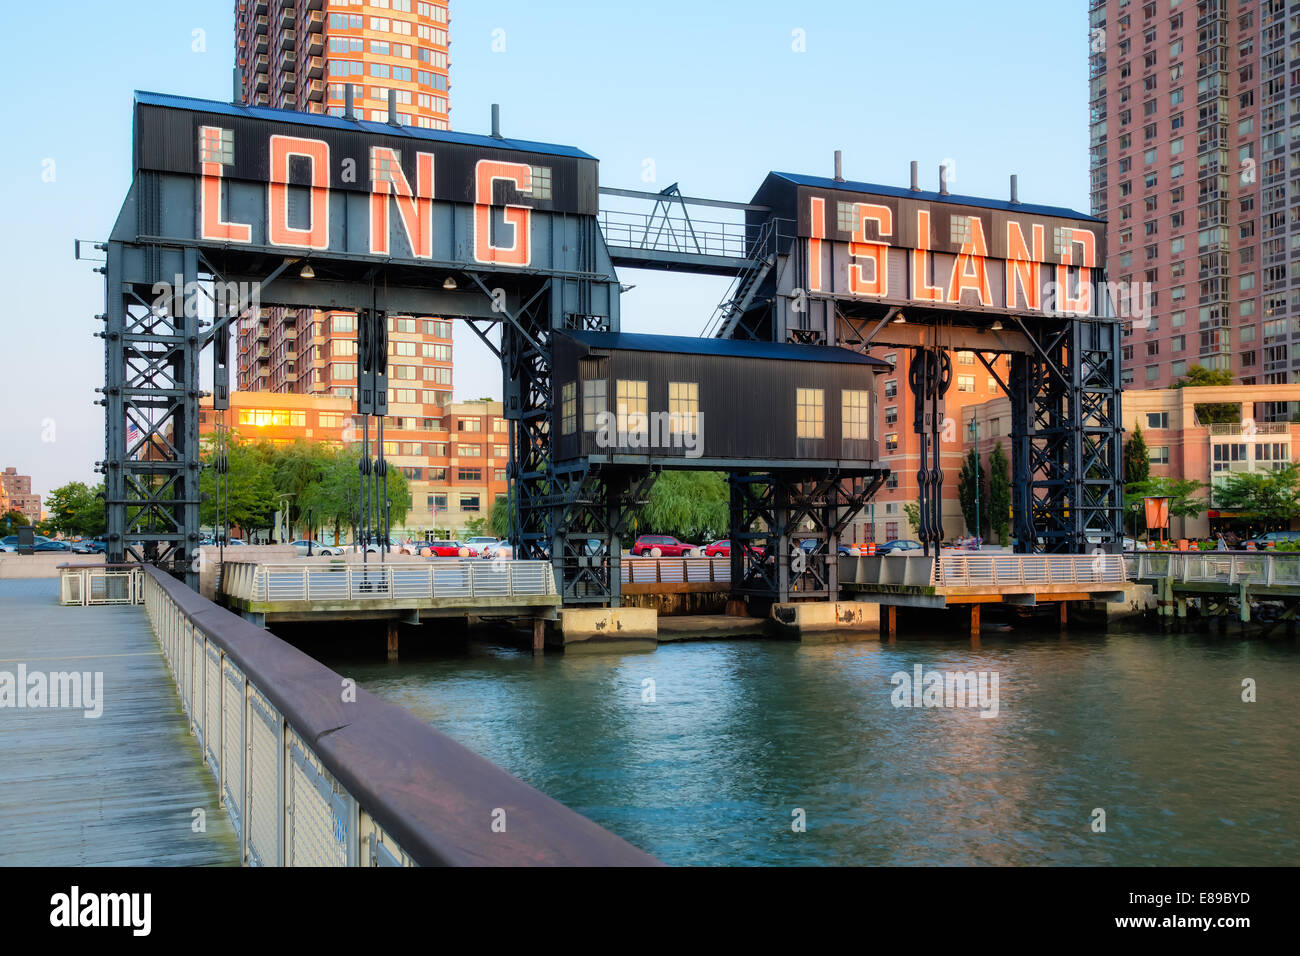 Gantry Plaza State Park gigantic gantries transfer bridges in Long Island City located in the borough of Queens, - Stock Image